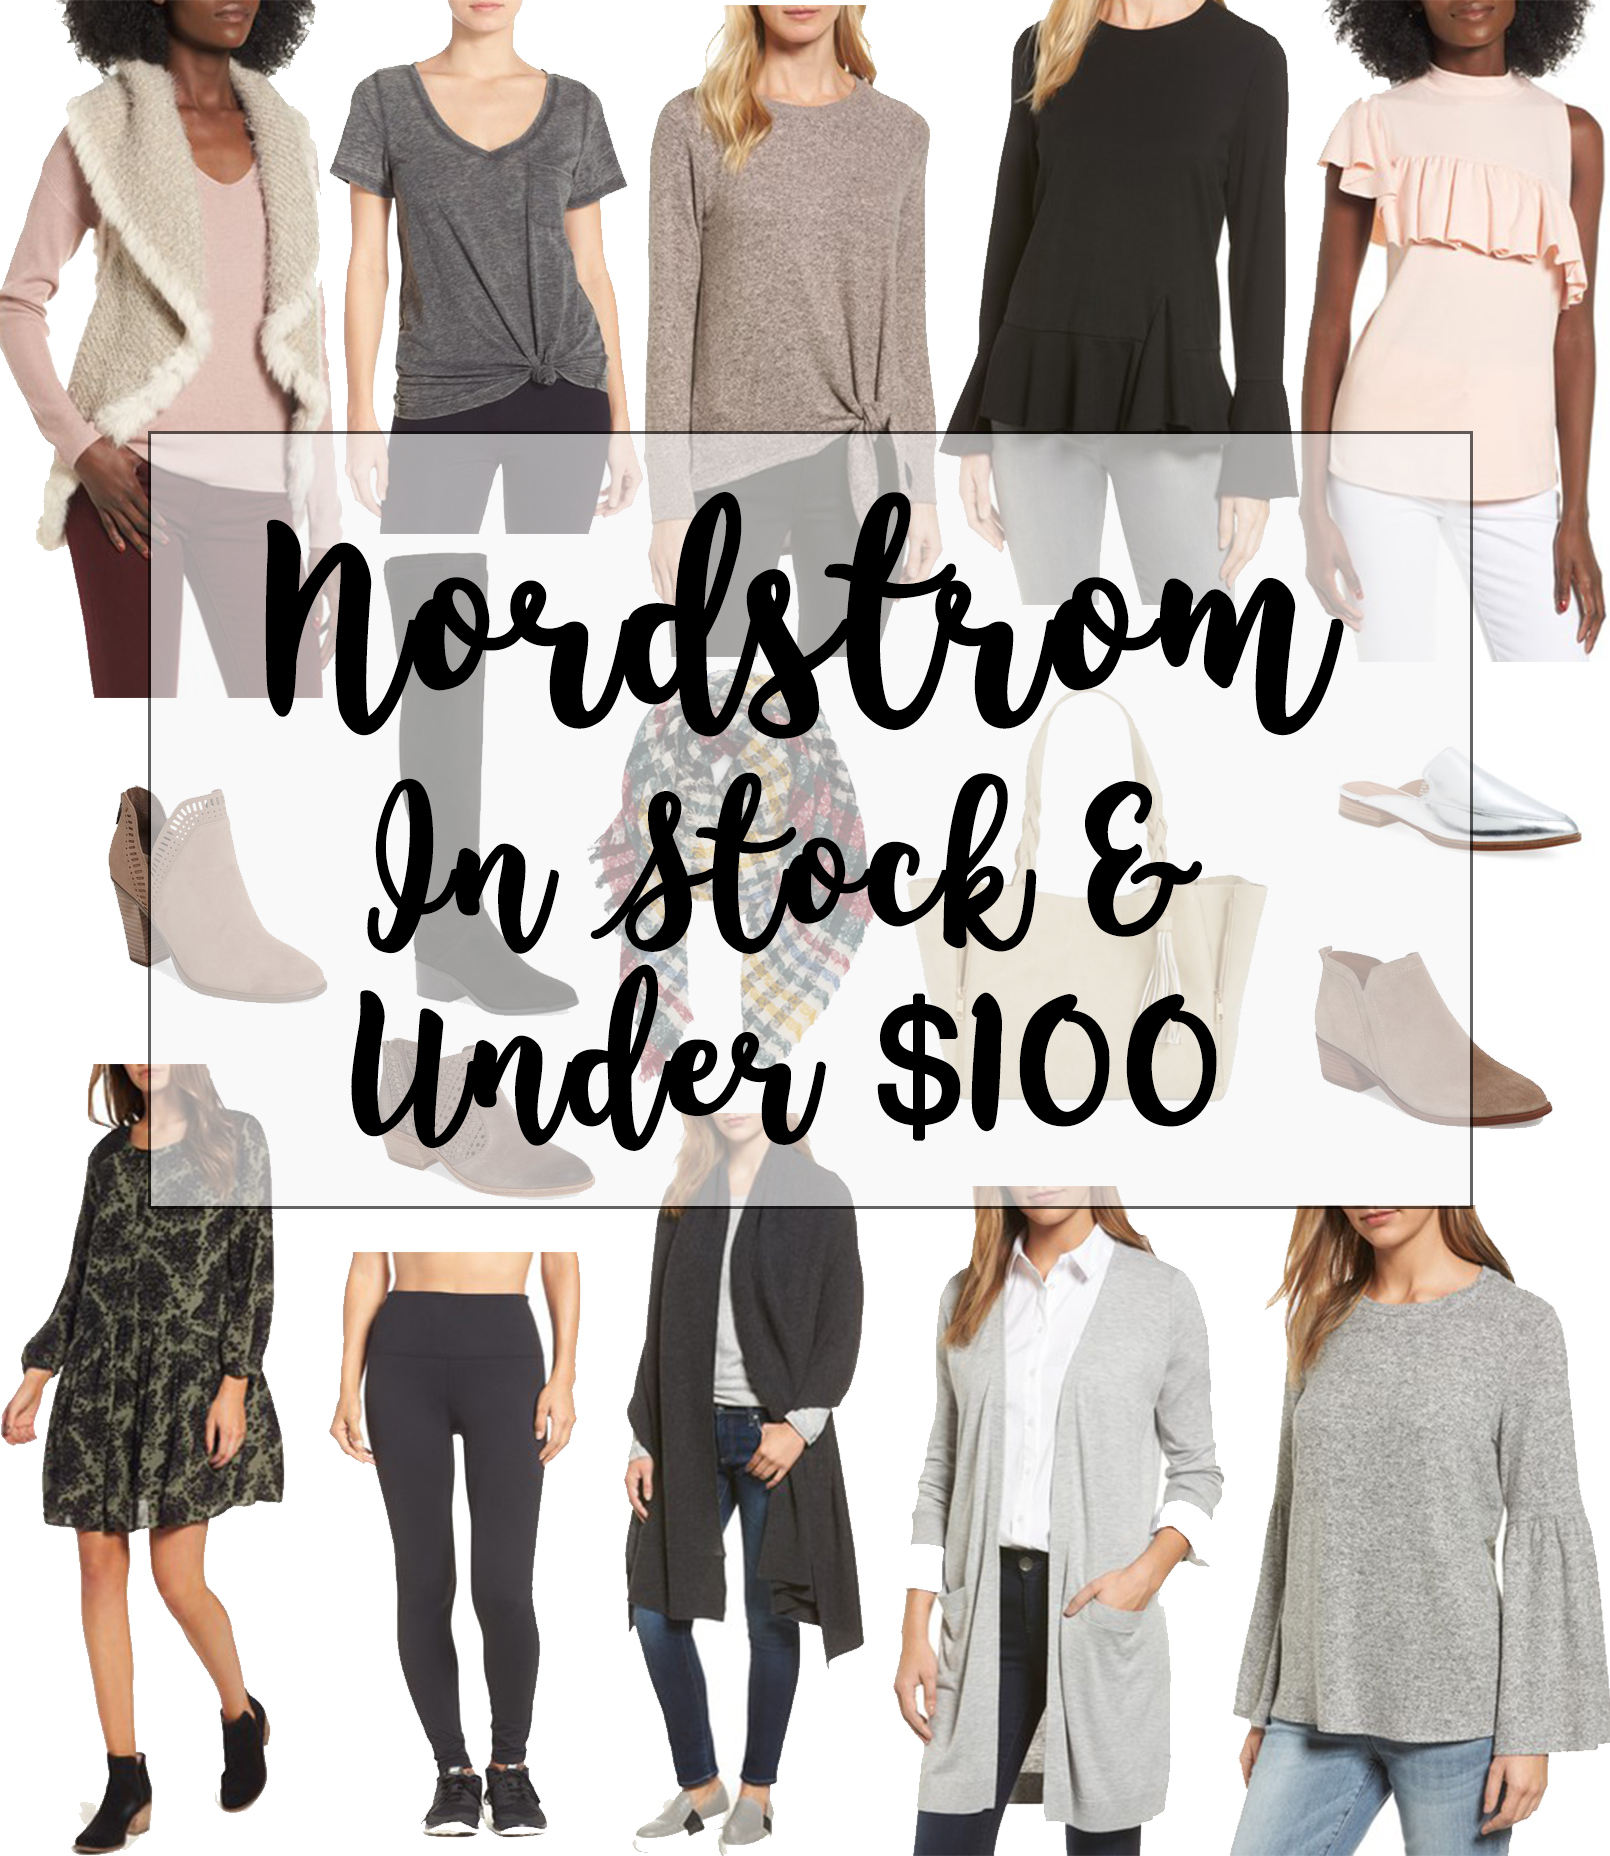 Nordstrom Anniversary Sale In Stock and Under $100